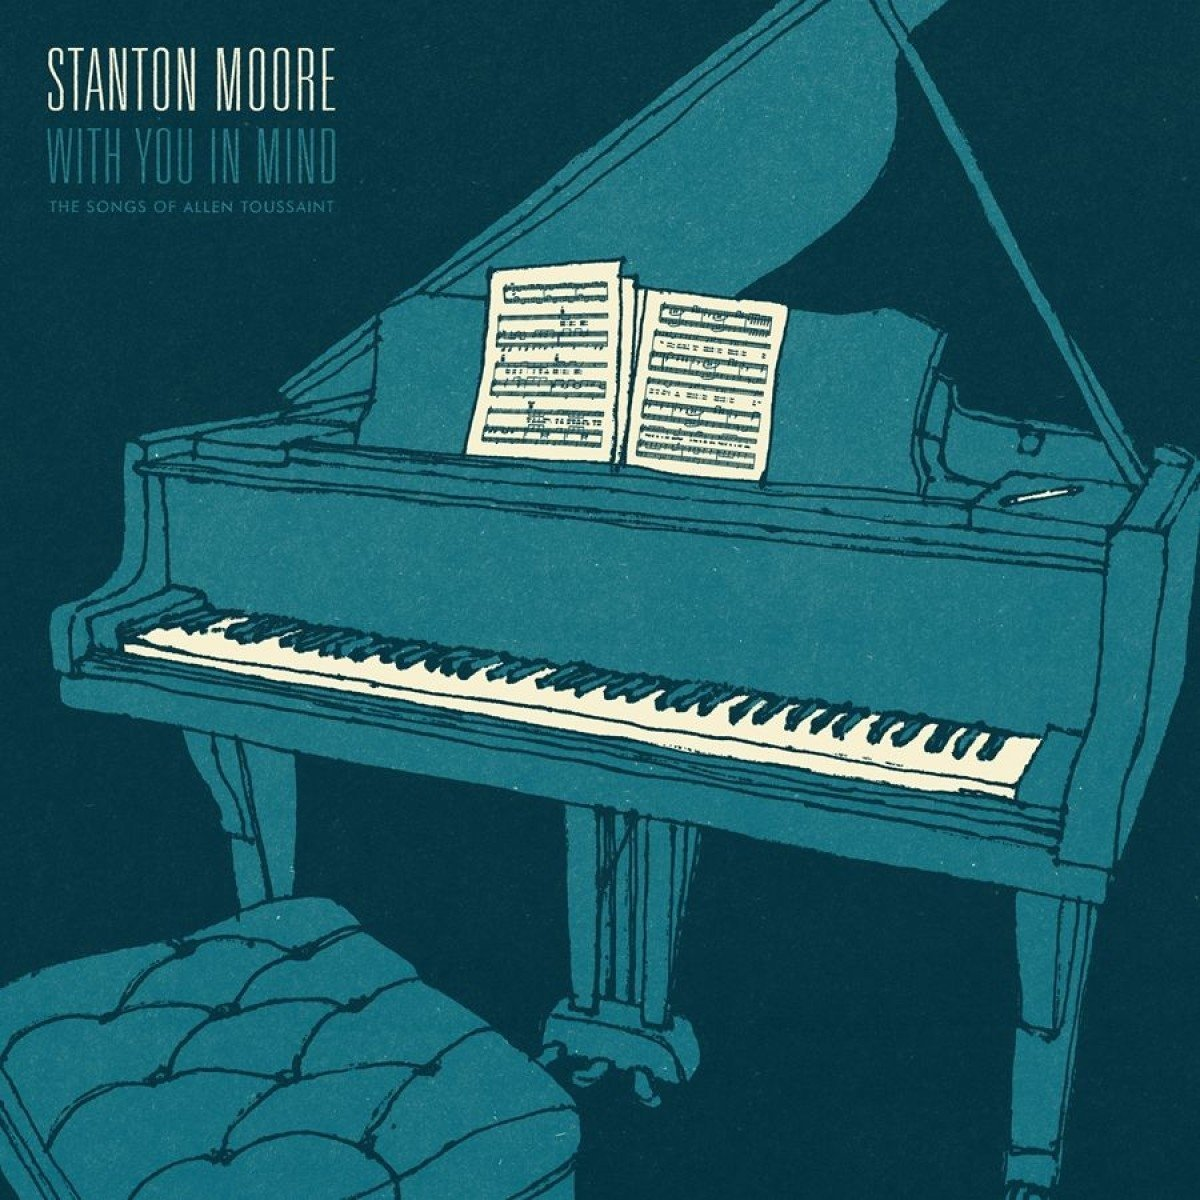 #WithYouInMind combines @Stanton_Moore&#39;s affection for #AllenToussaint with immersive knowledge in his songbook.  http://www. slantmagazine.com/music/review/s tanton-moore-with-you-in-mind &nbsp; … <br>http://pic.twitter.com/cCd39aKsmY